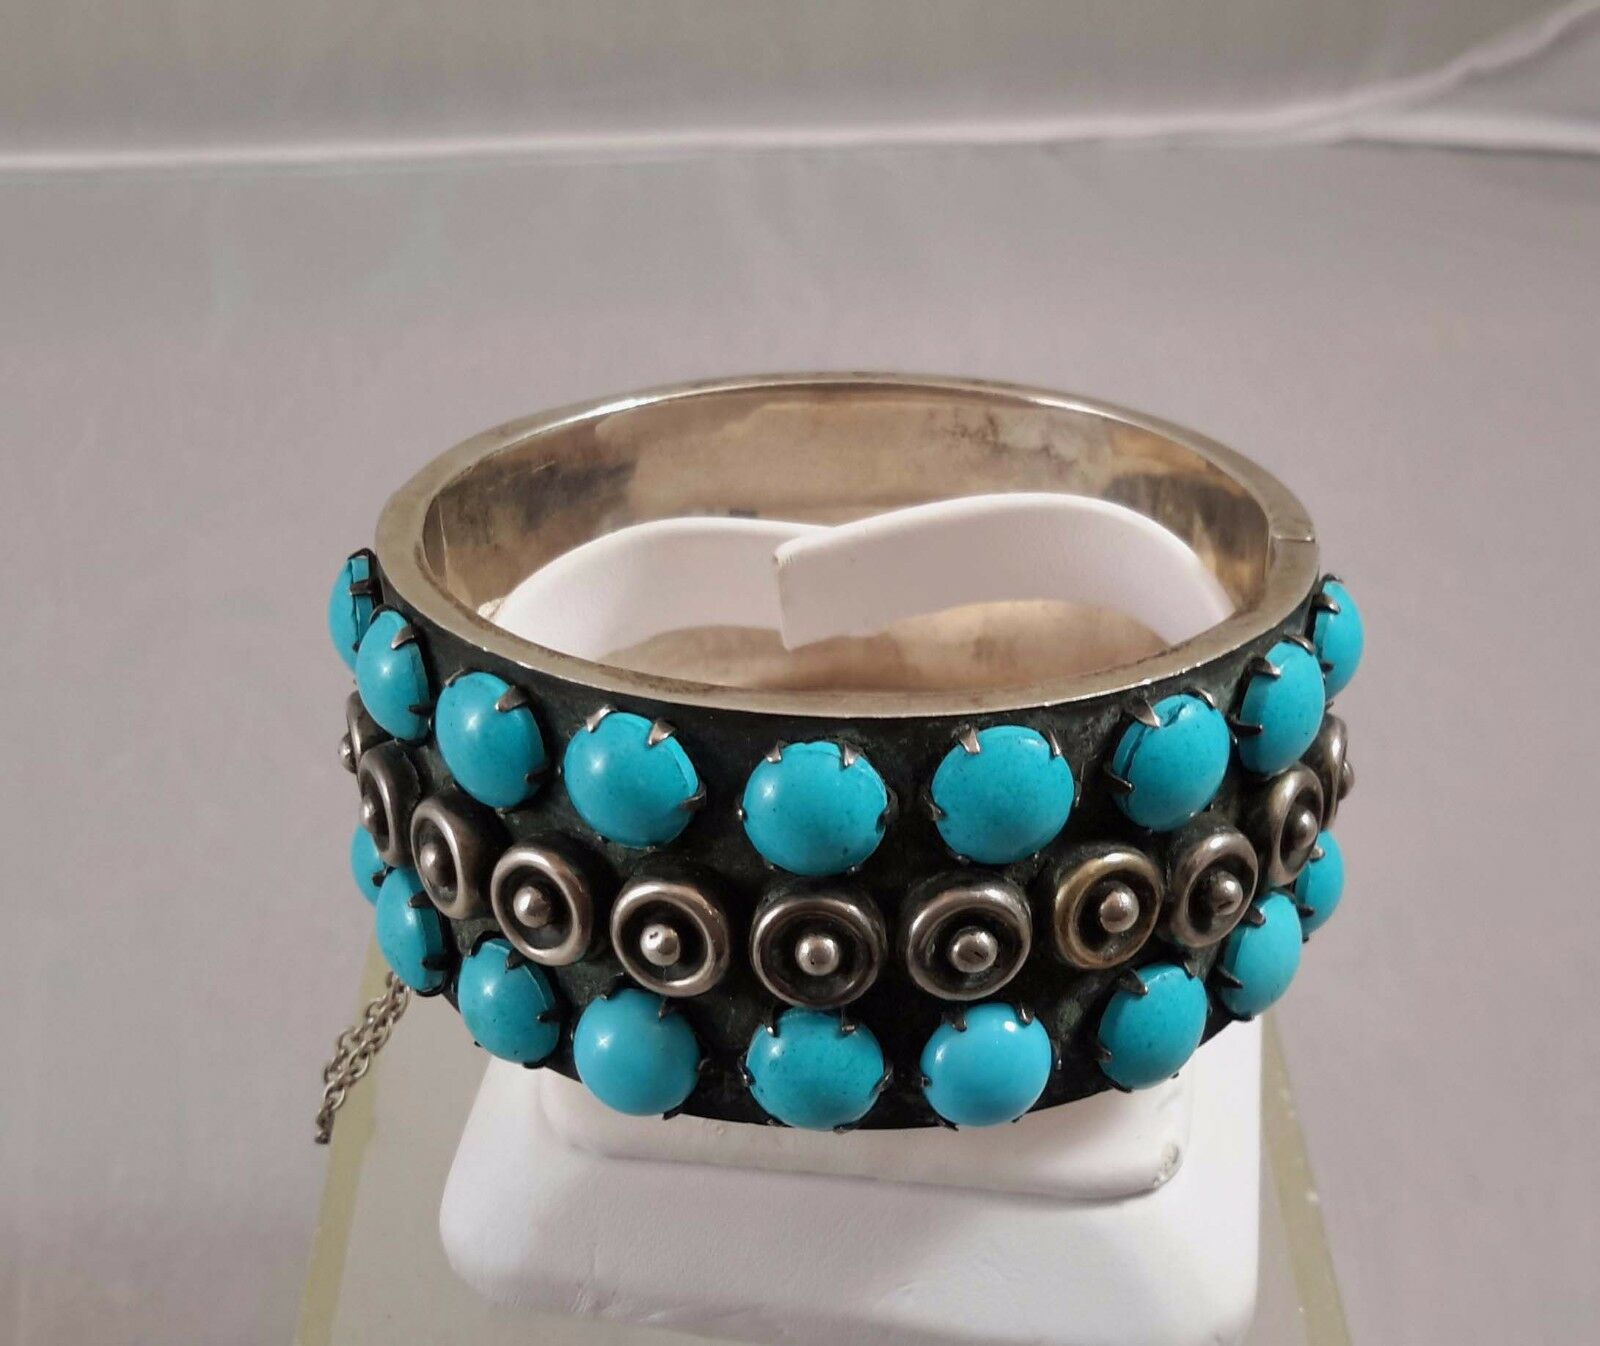 MID CENTURY MODERN STERLING SILVER TURQUOISE BRA… - image 1